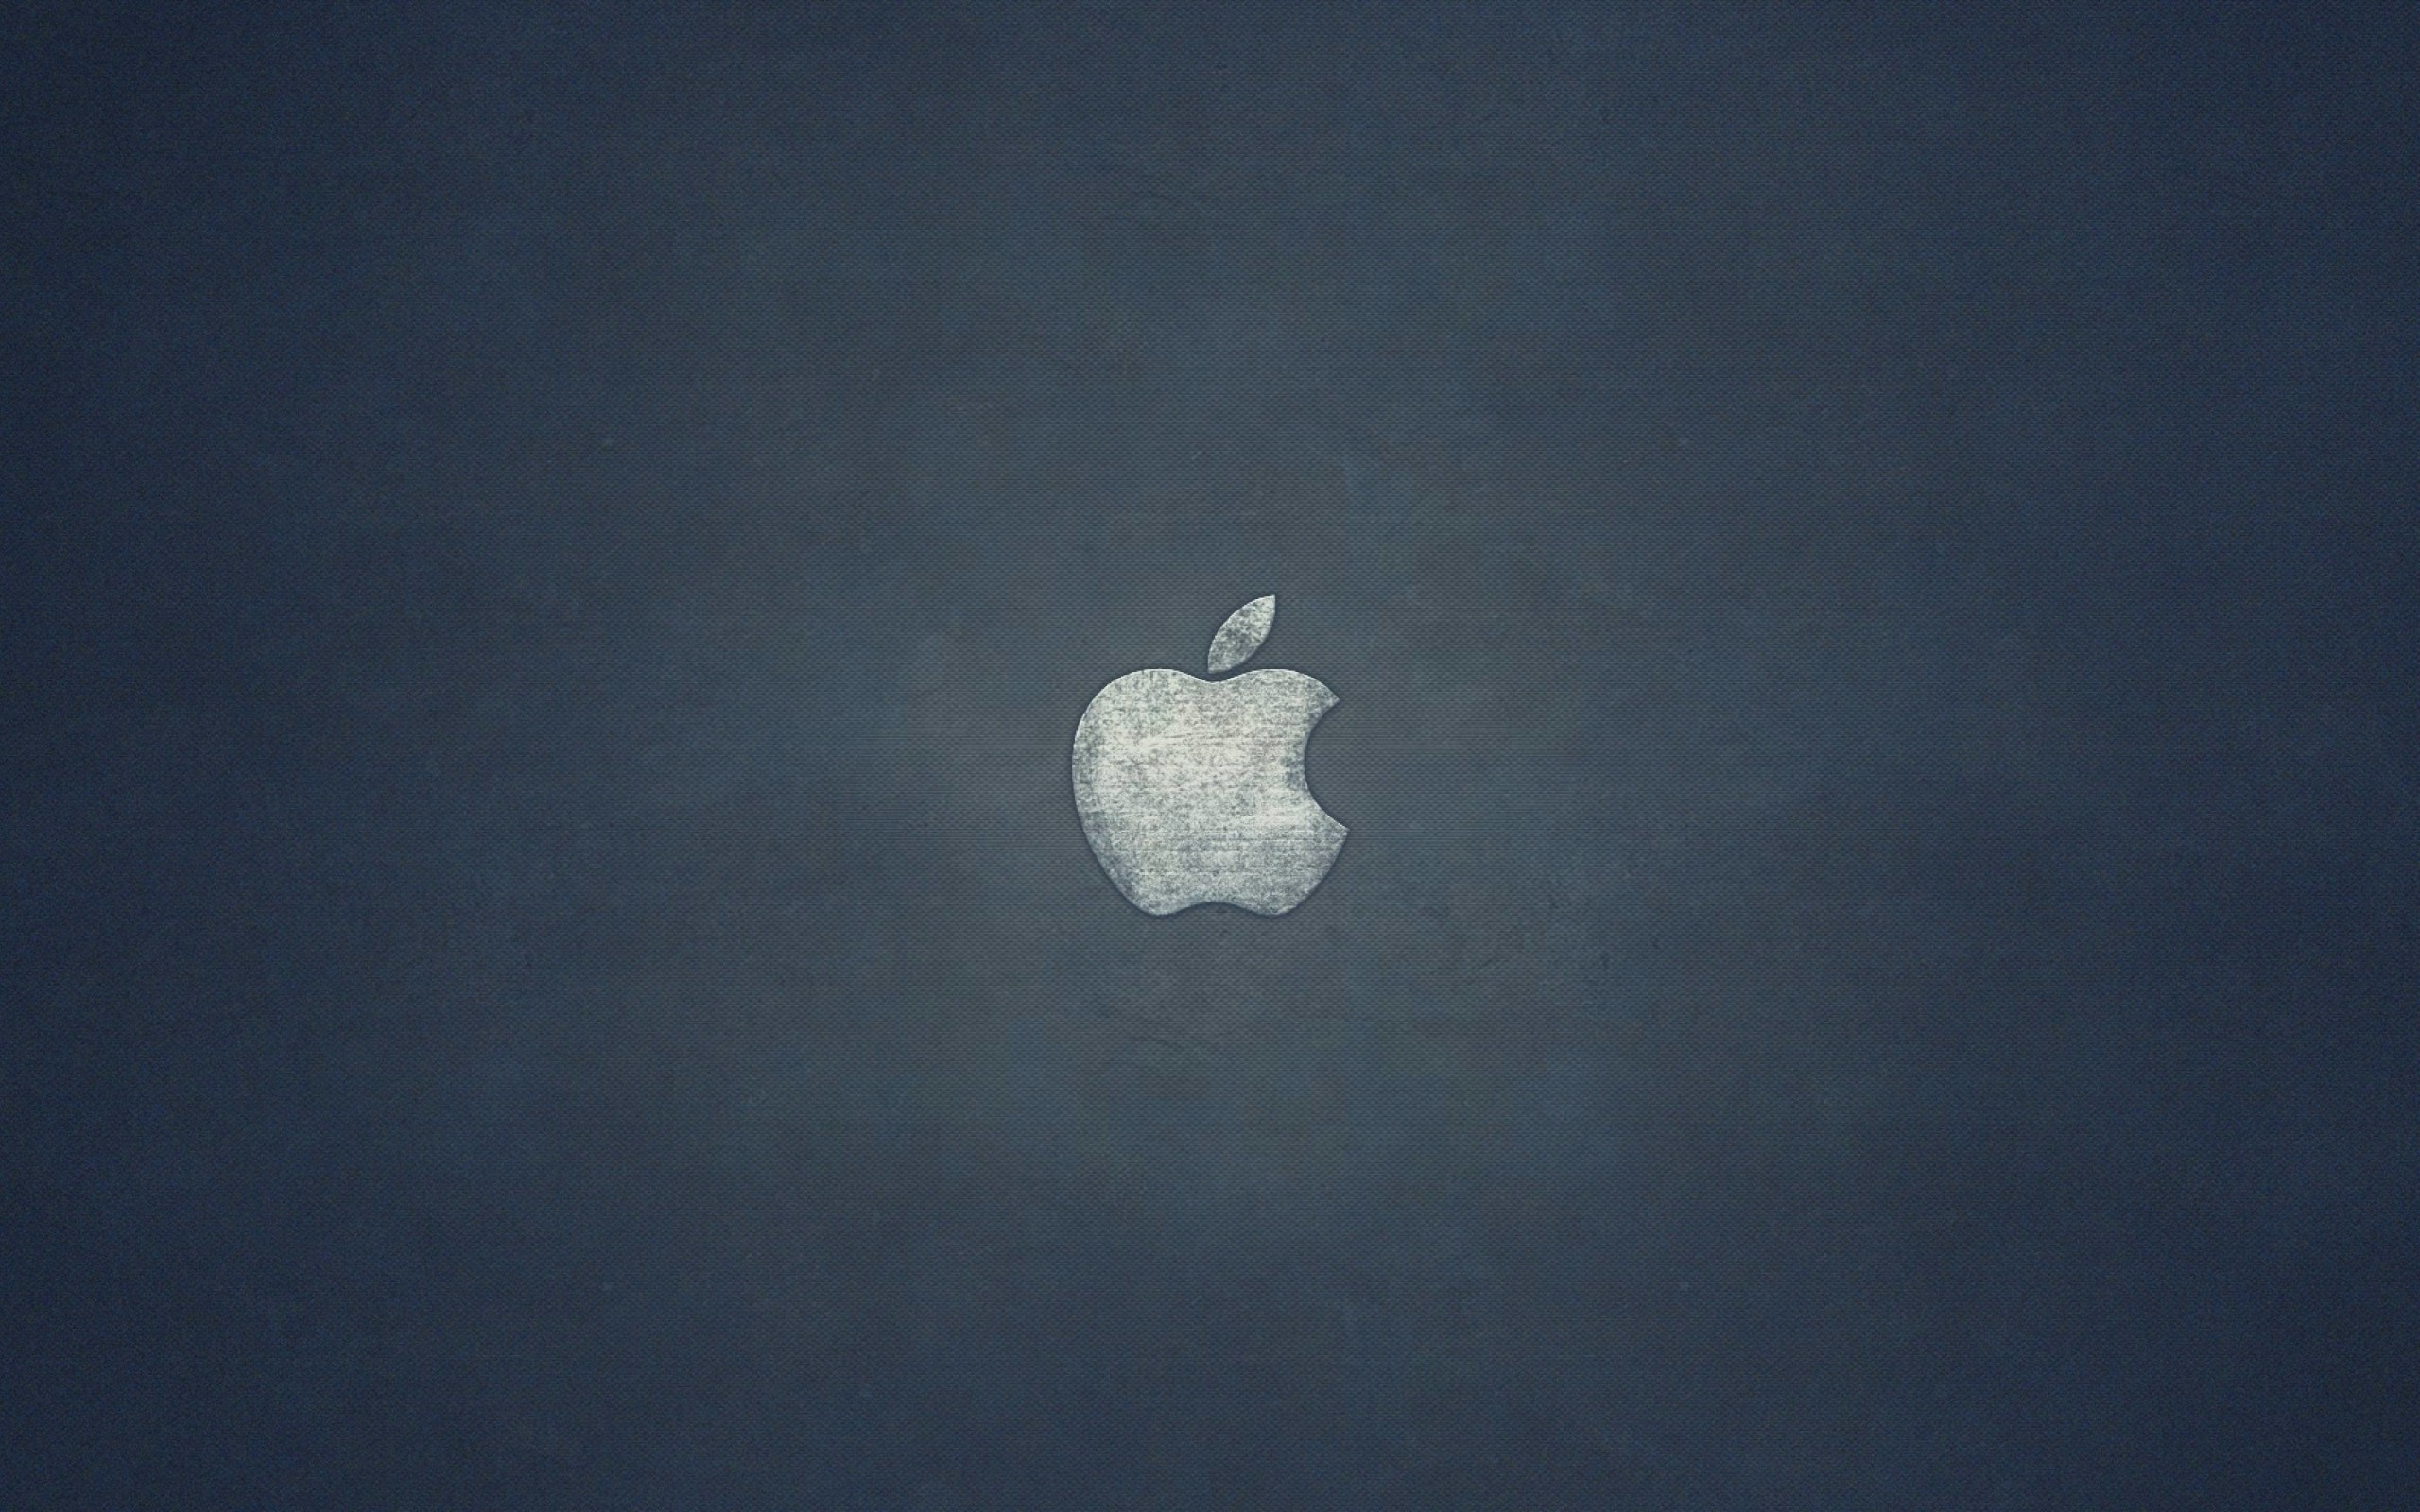 Grunge Apple Logo Wallpaper for Desktop 2560x1600